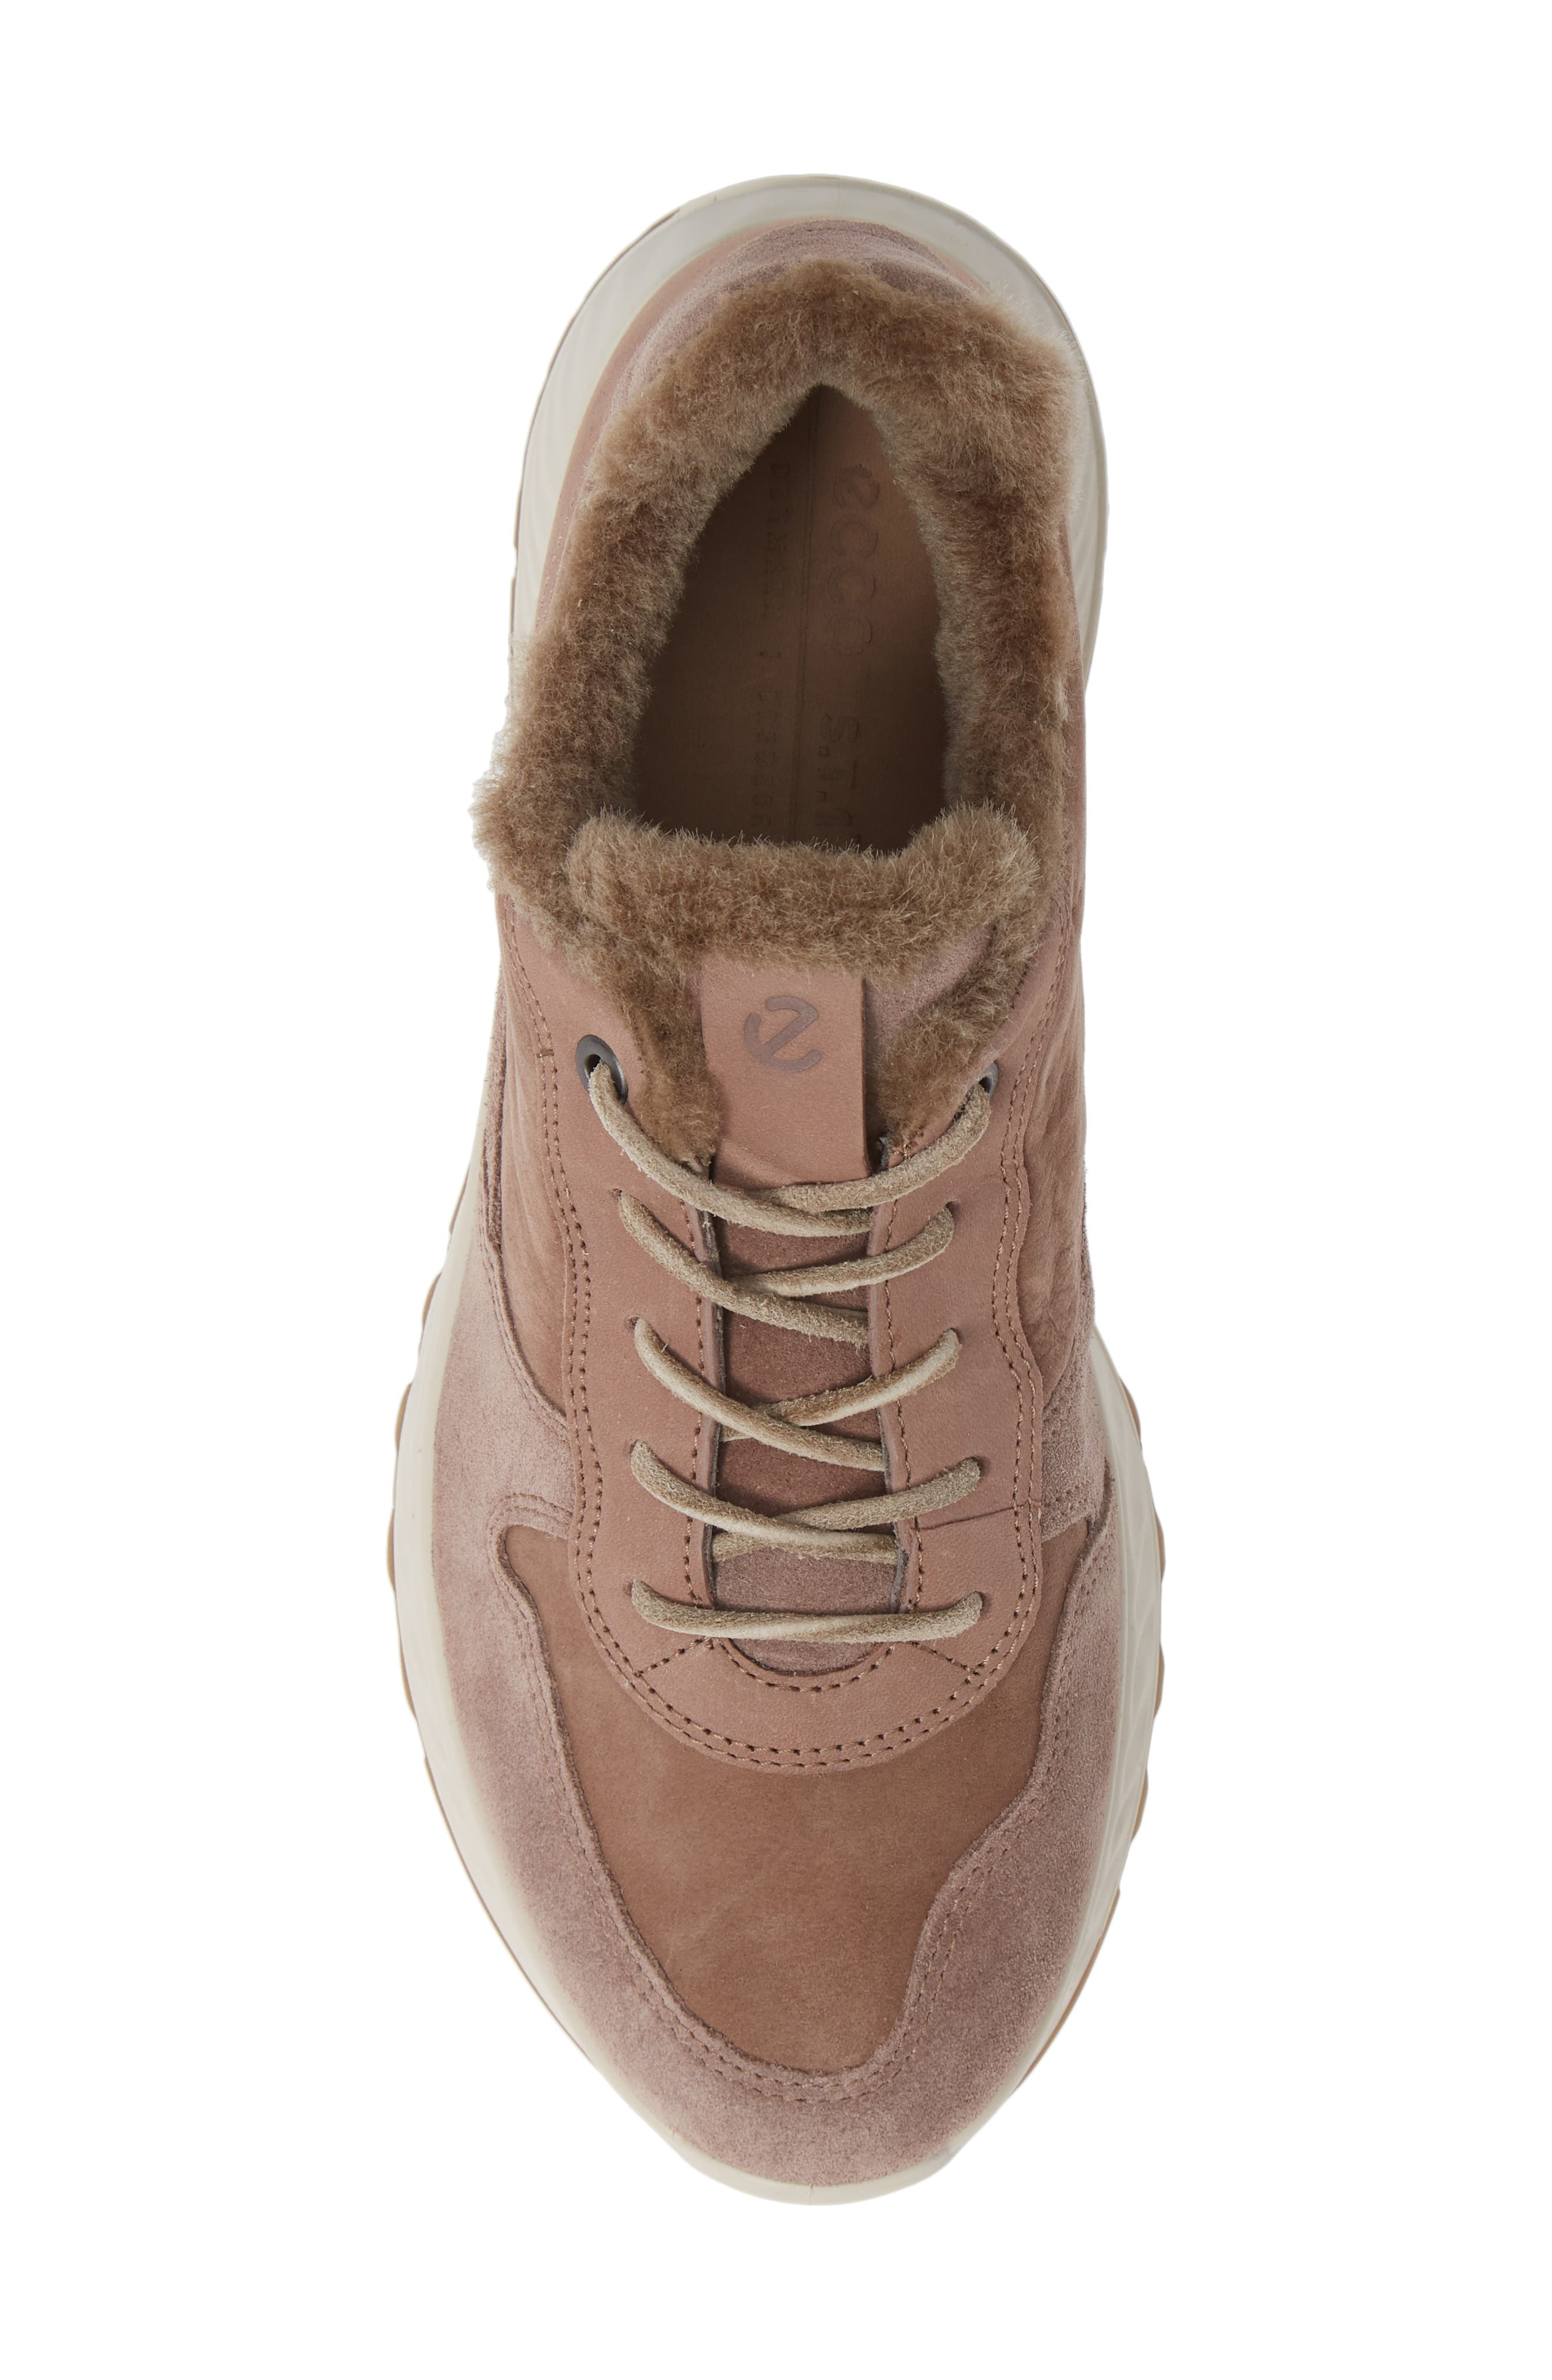 ST1 Genuine Shearling Sneaker,                             Alternate thumbnail 5, color,                             DEEP TAUPE NUBUCK LEATHER